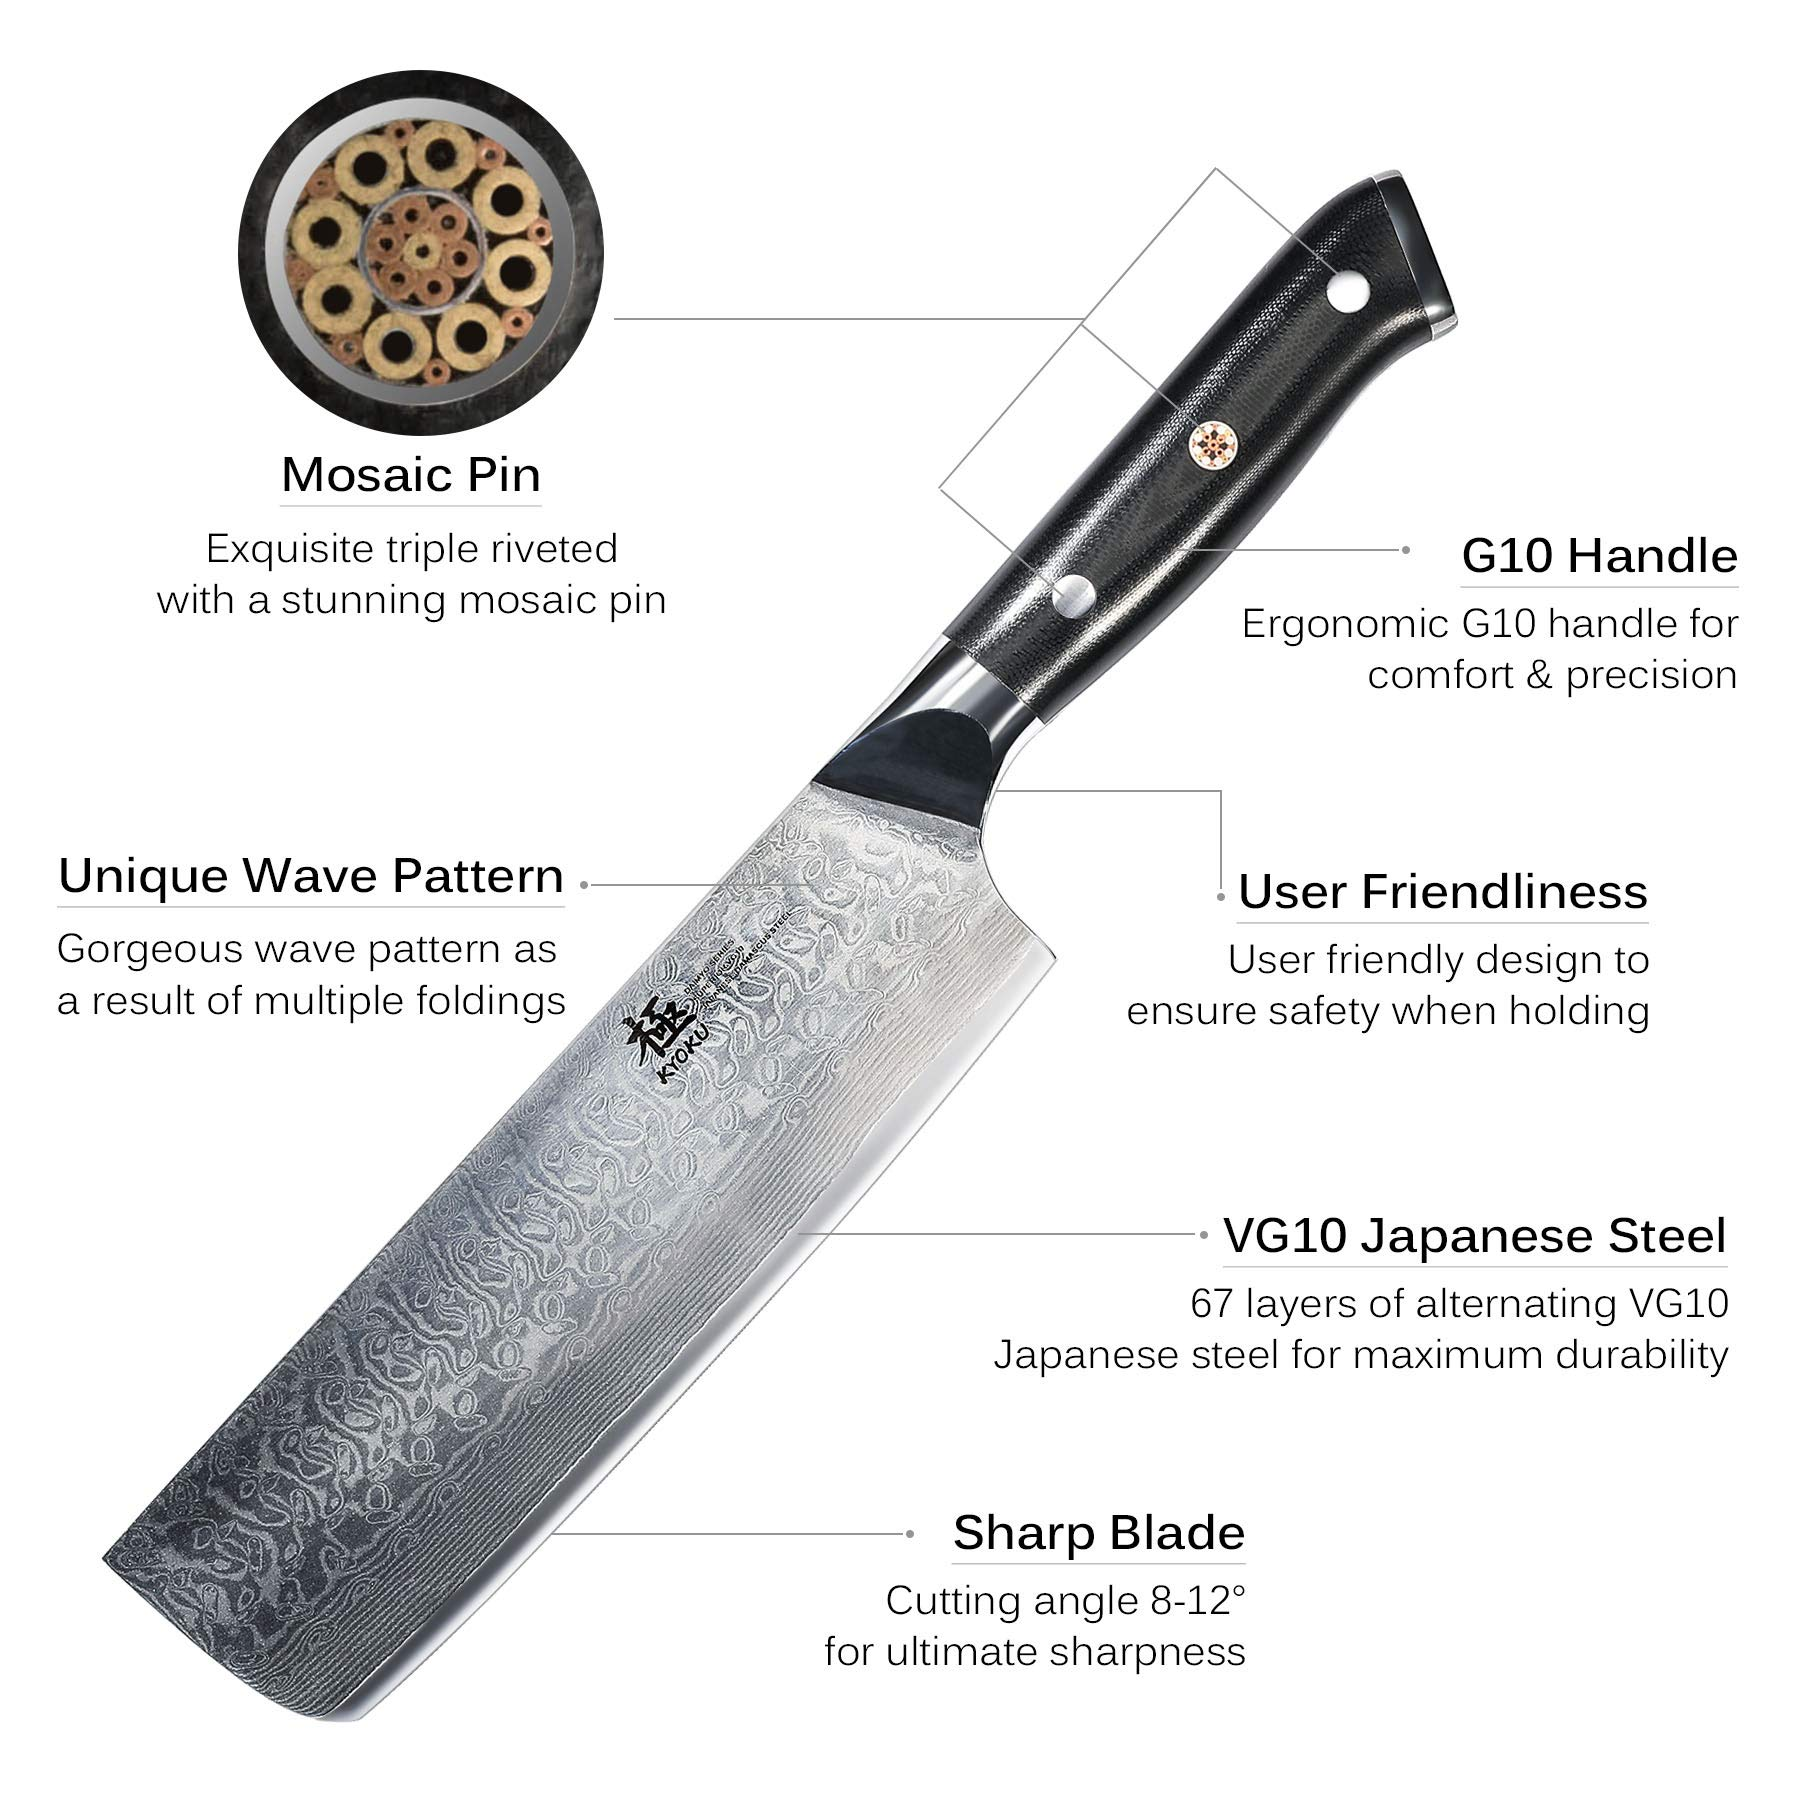 KYOKU Daimyo Series - 6-Inch Nakiri Vegetable Chef Knife with Sheath Case - Japanese VG10 Steel Core 67-Layer Forged Damascus Blade - Full Tang - G10 Handle with Mosaic Pin by KYOKU (Image #3)